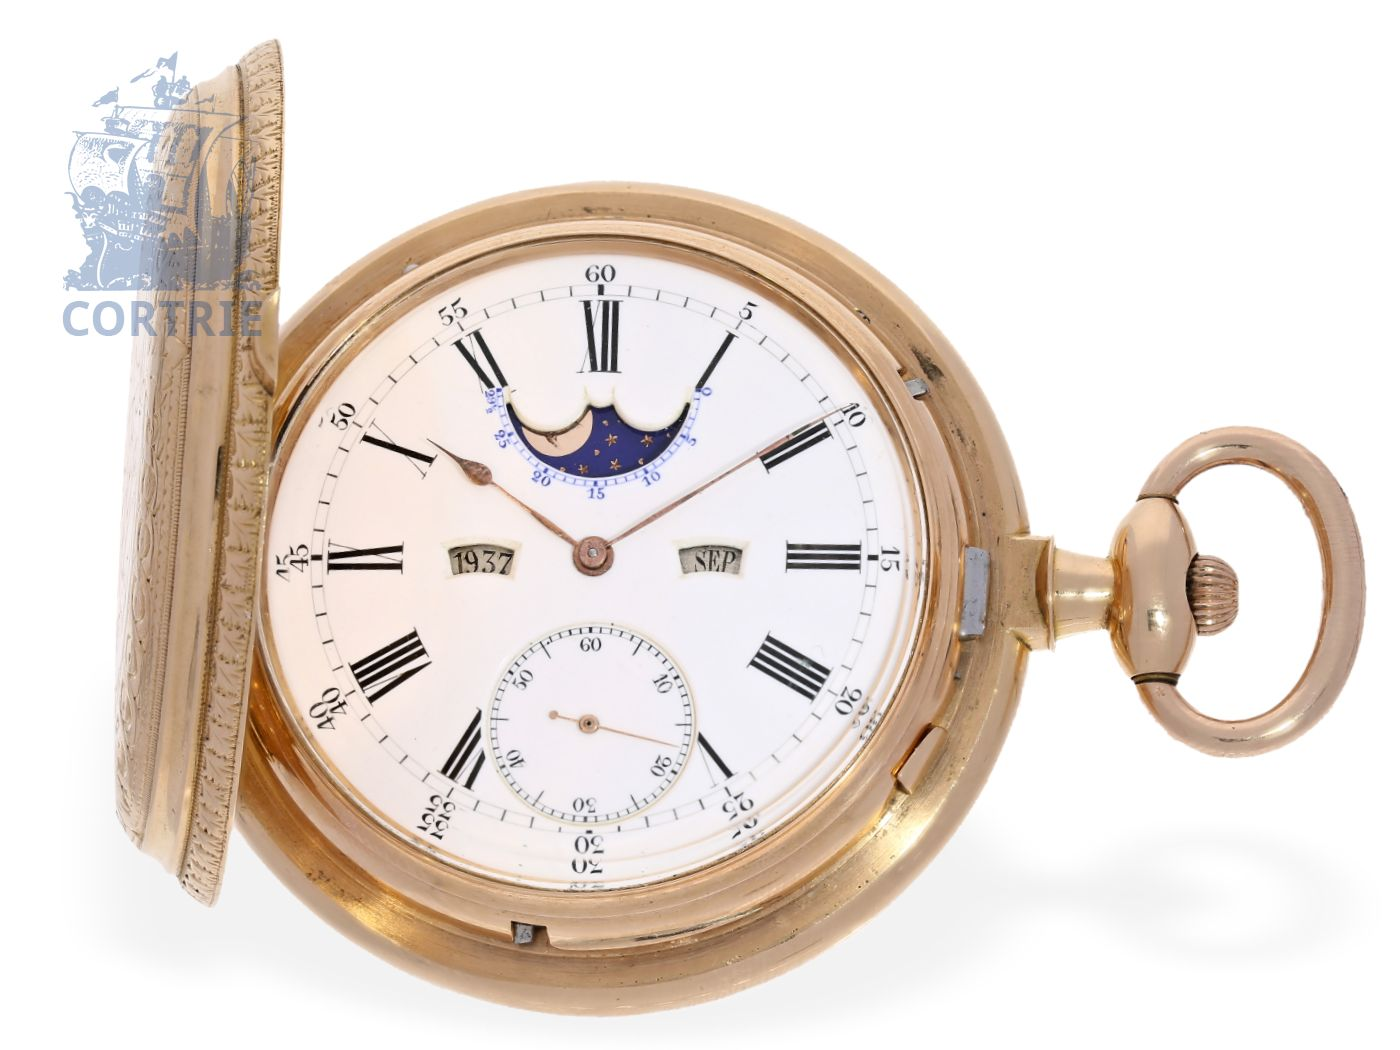 Pocket watch: extremely rare and heavy, astronomical double face pink gold hunting case watch, special winding mechanism with spring lid, perpetual calendar and moon, B. Haas Jeune & Co. Genève & Paris ca.1885-